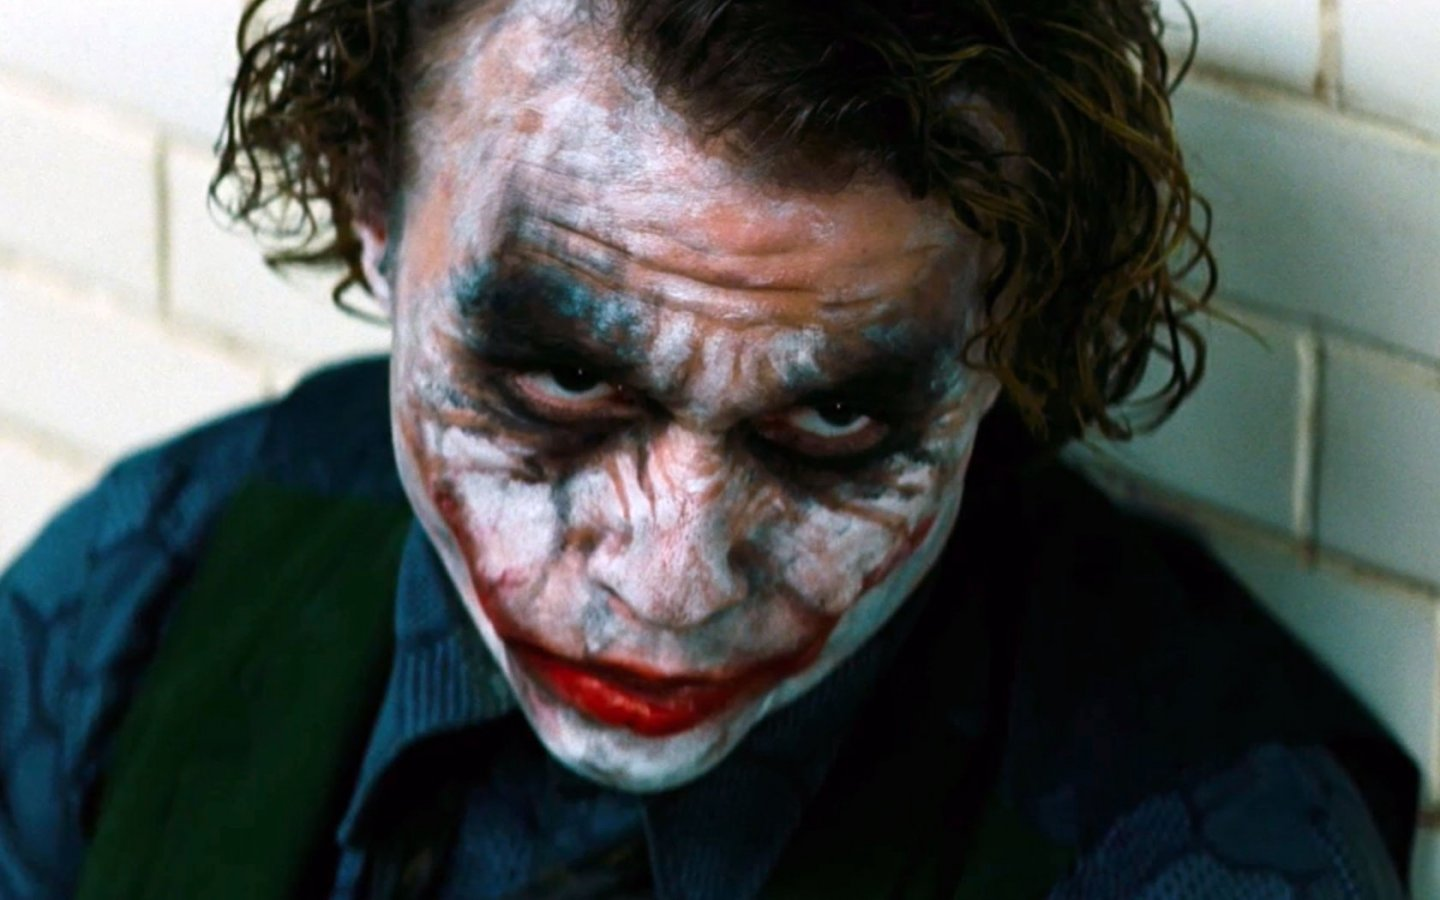 The Joker HD Wallpapers Widescreen 1440900 batman movie 1440x900